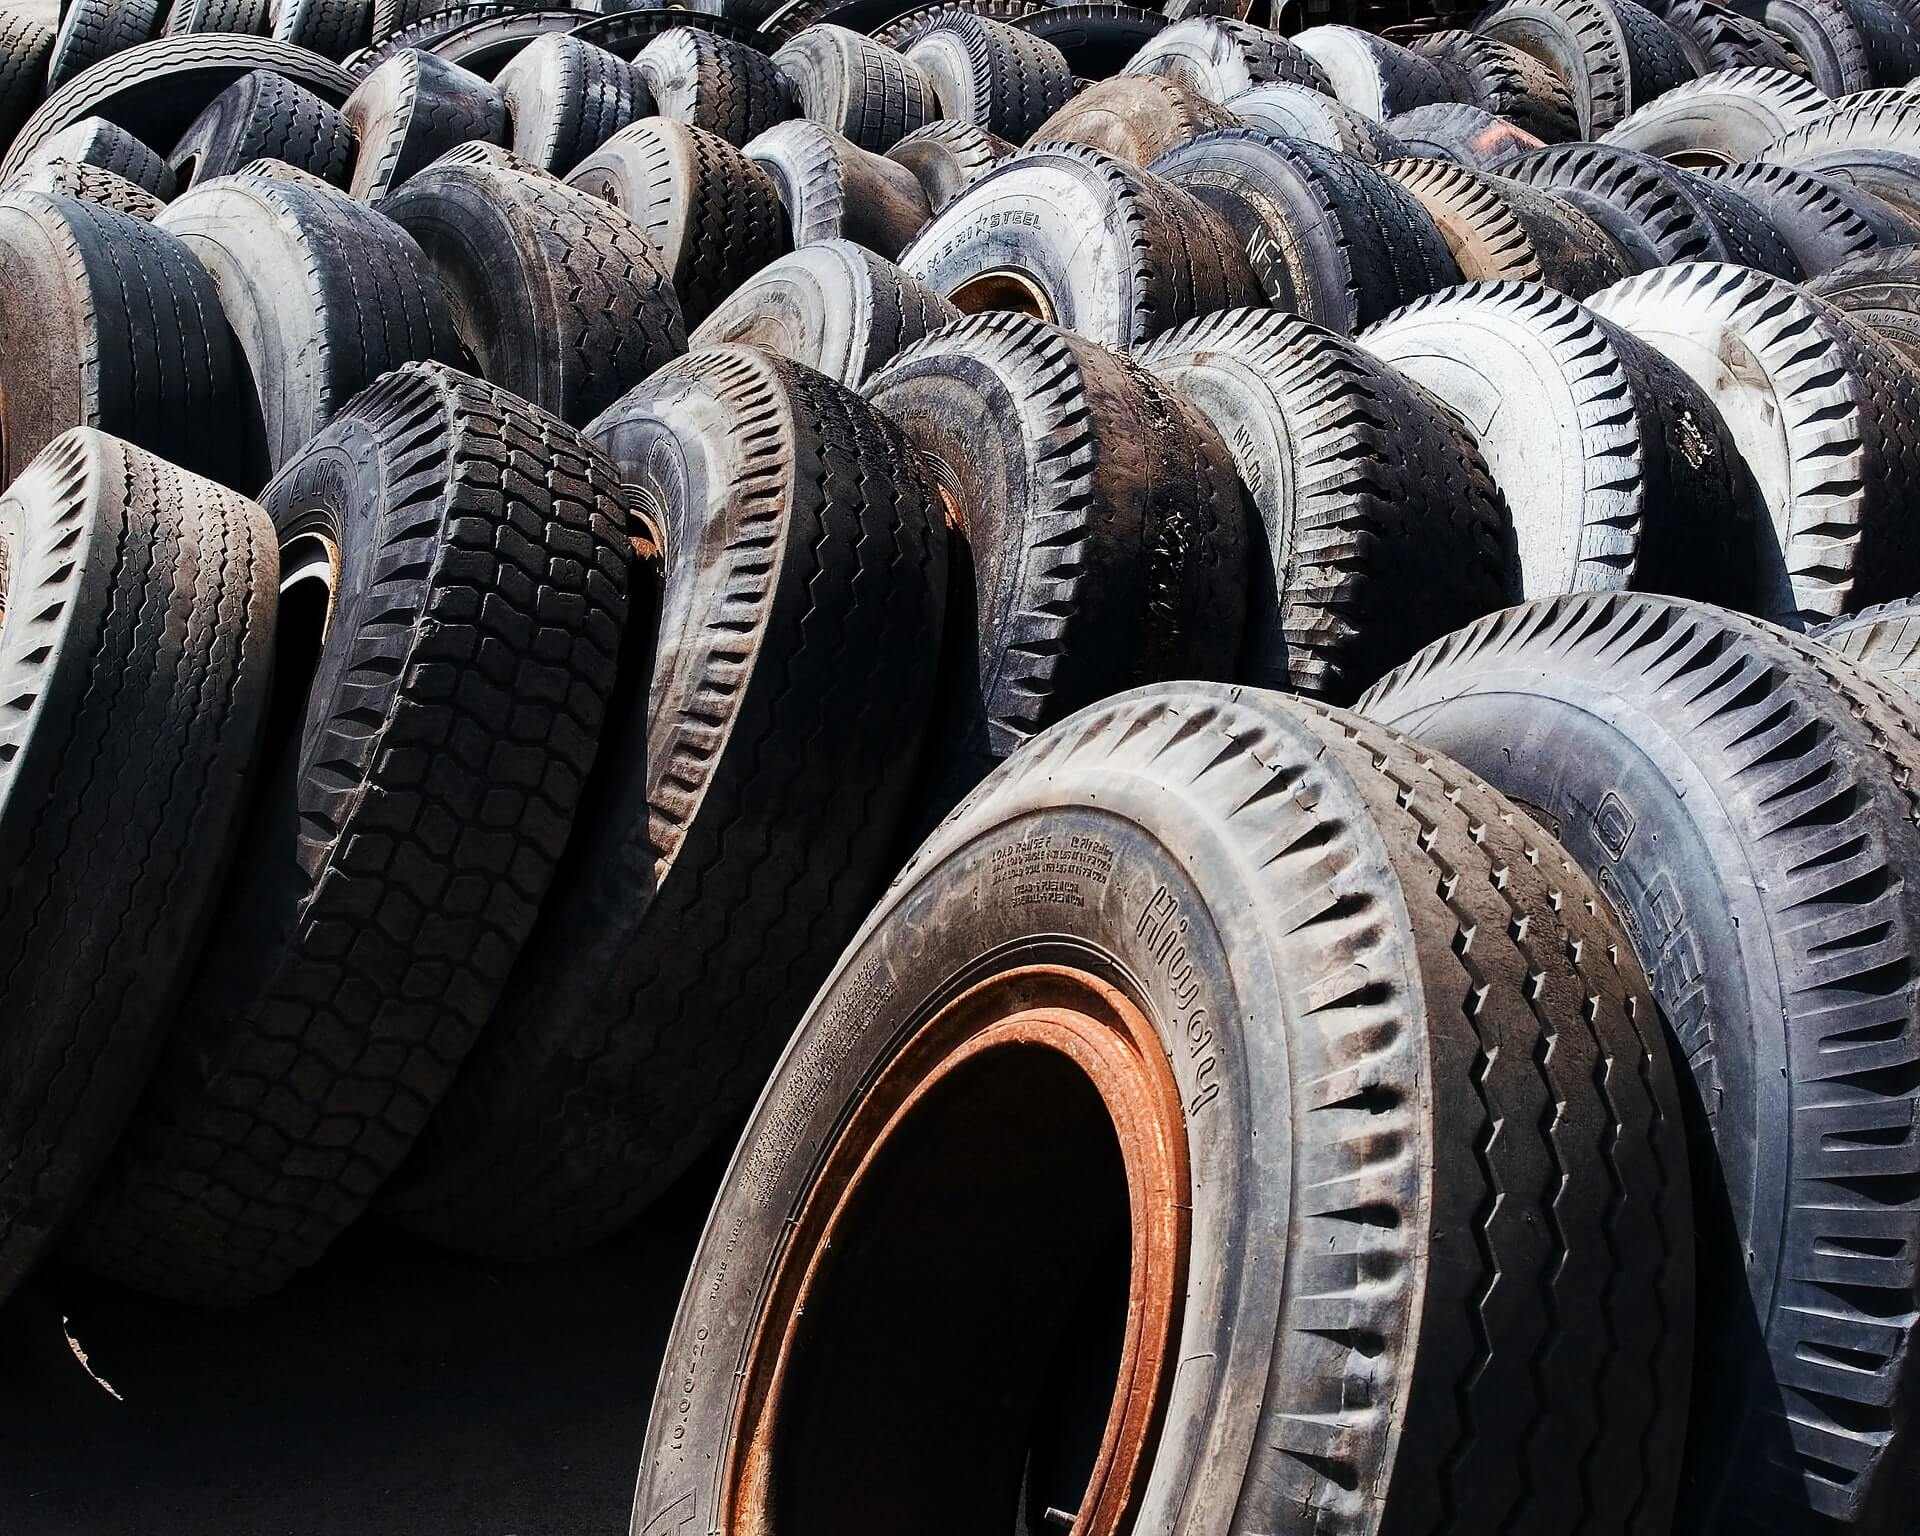 Rows of tires lined up side by side and leaning against each other